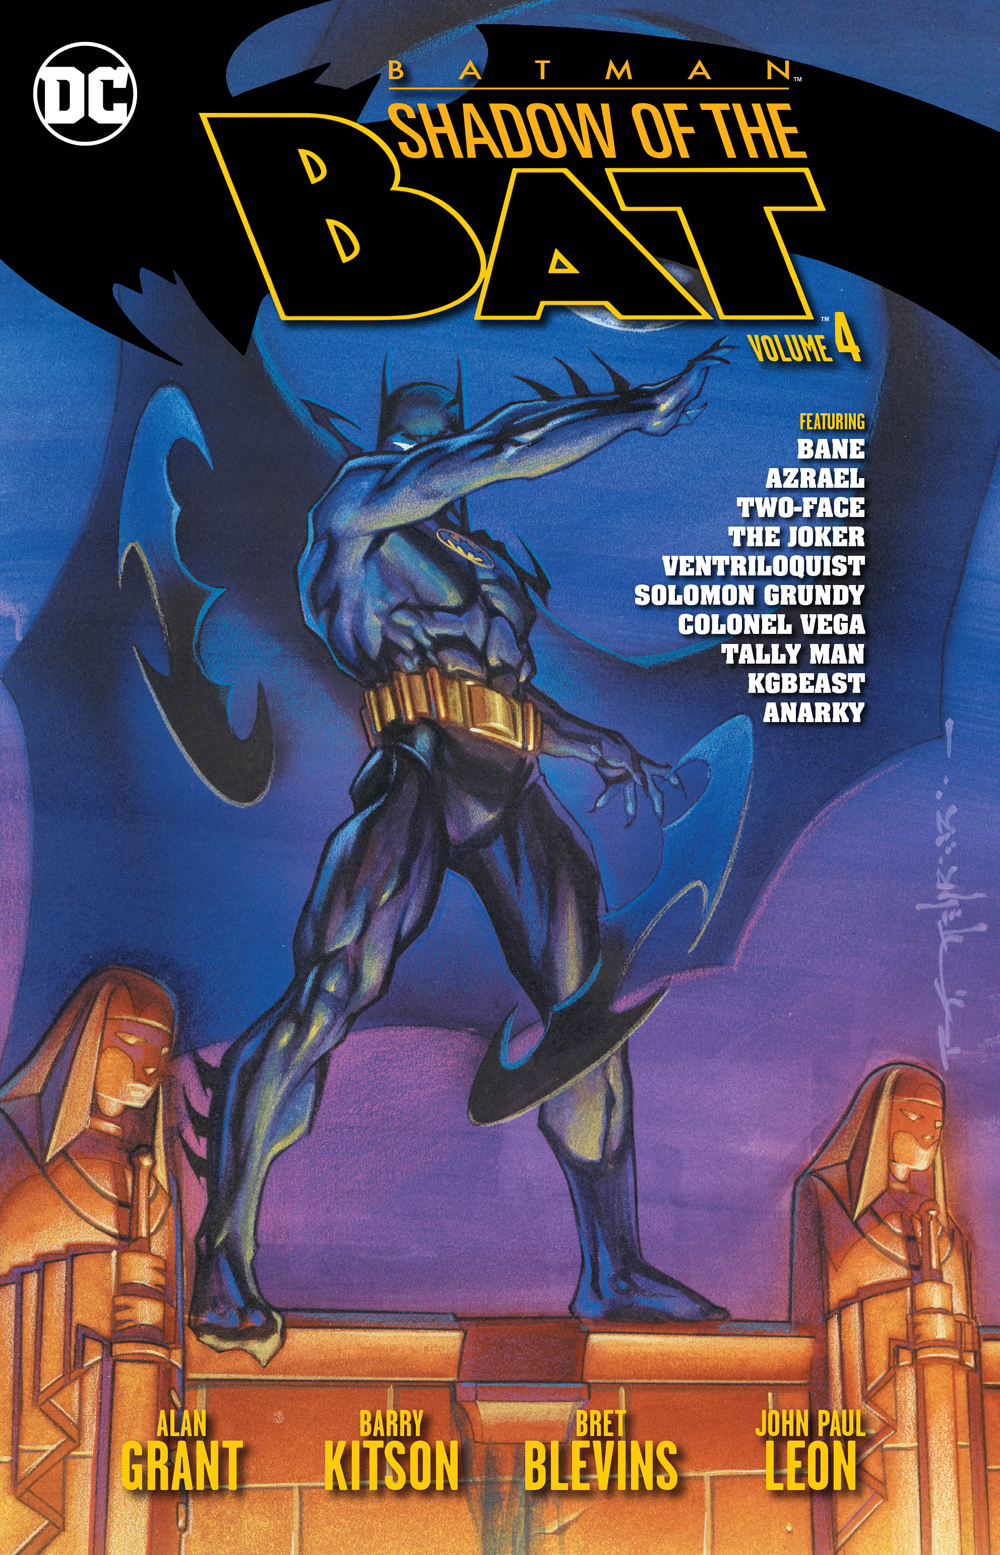 BATMAN SHADOW OF THE BAT TP VOL 04